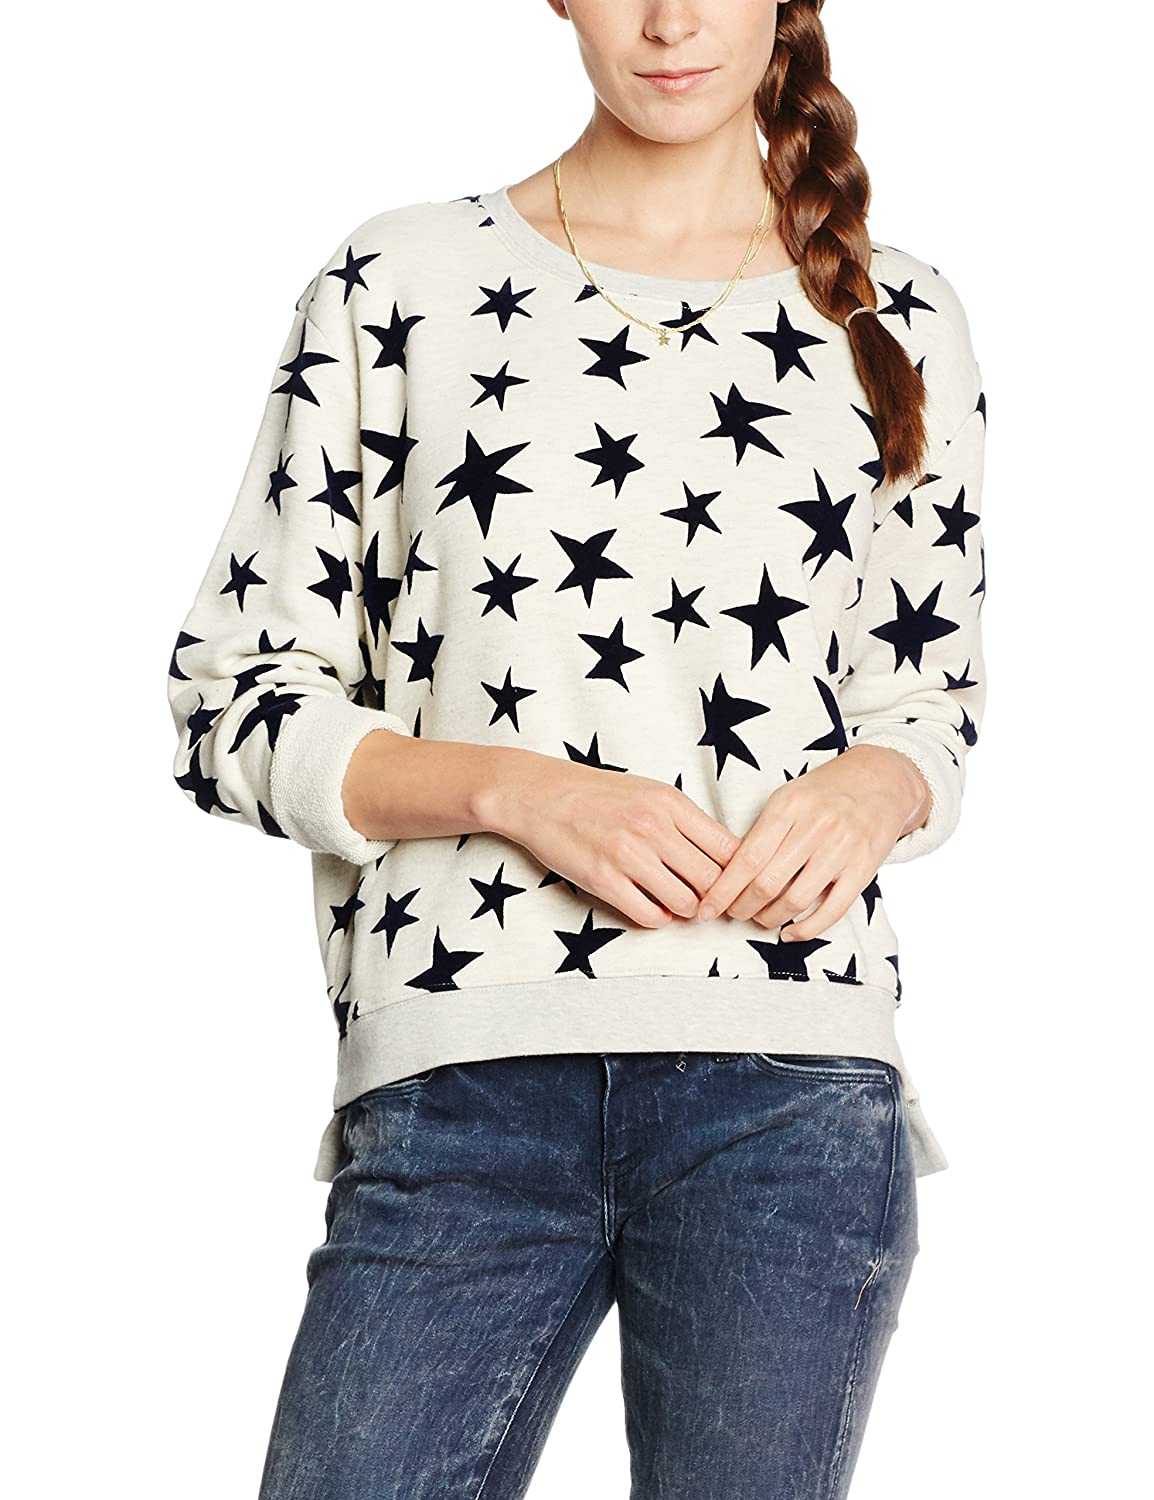 Maison Scotch Damen Sweatshirt Crew Neck Sweat with Allover Fun Prints